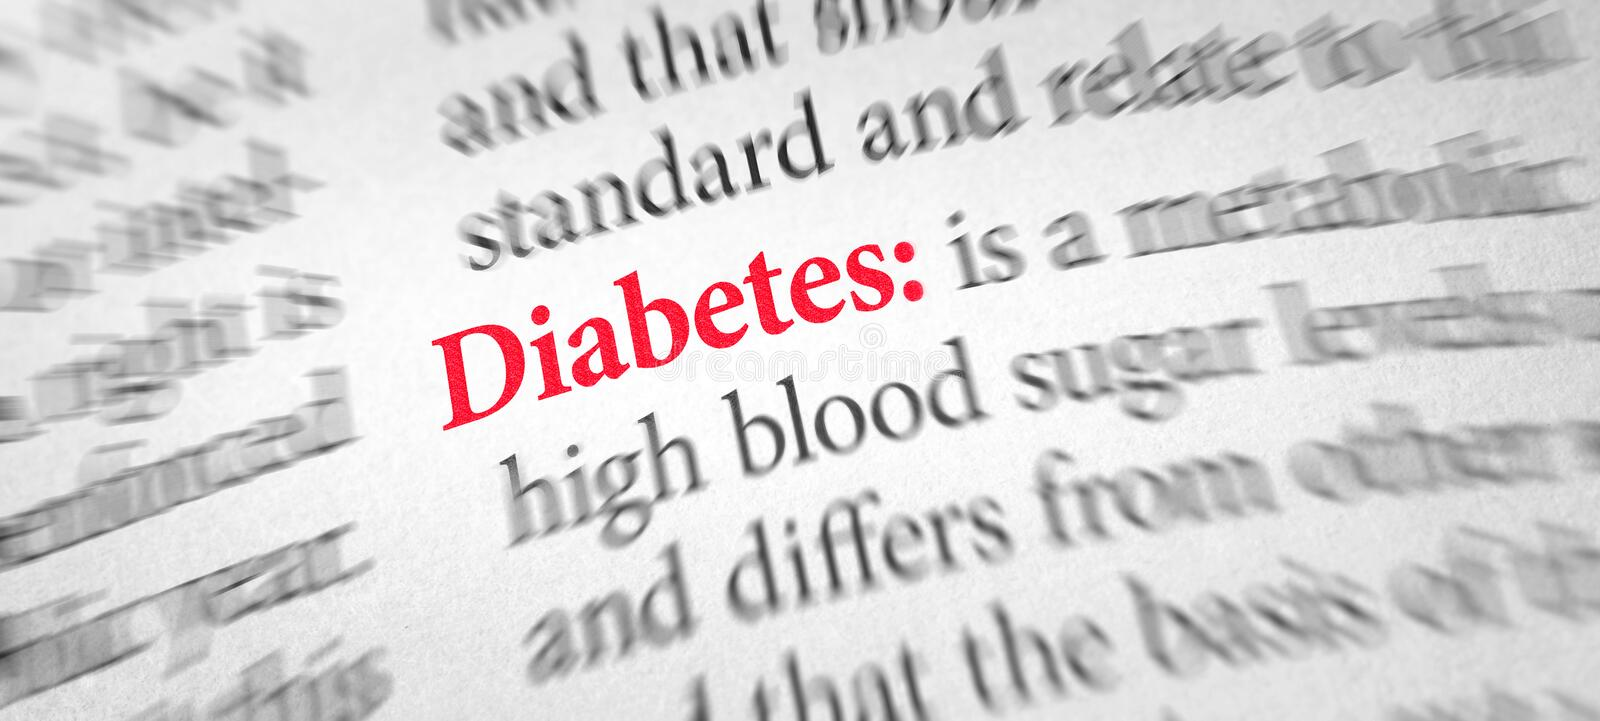 Definition of the word Diabetes in a dictionary stock photography